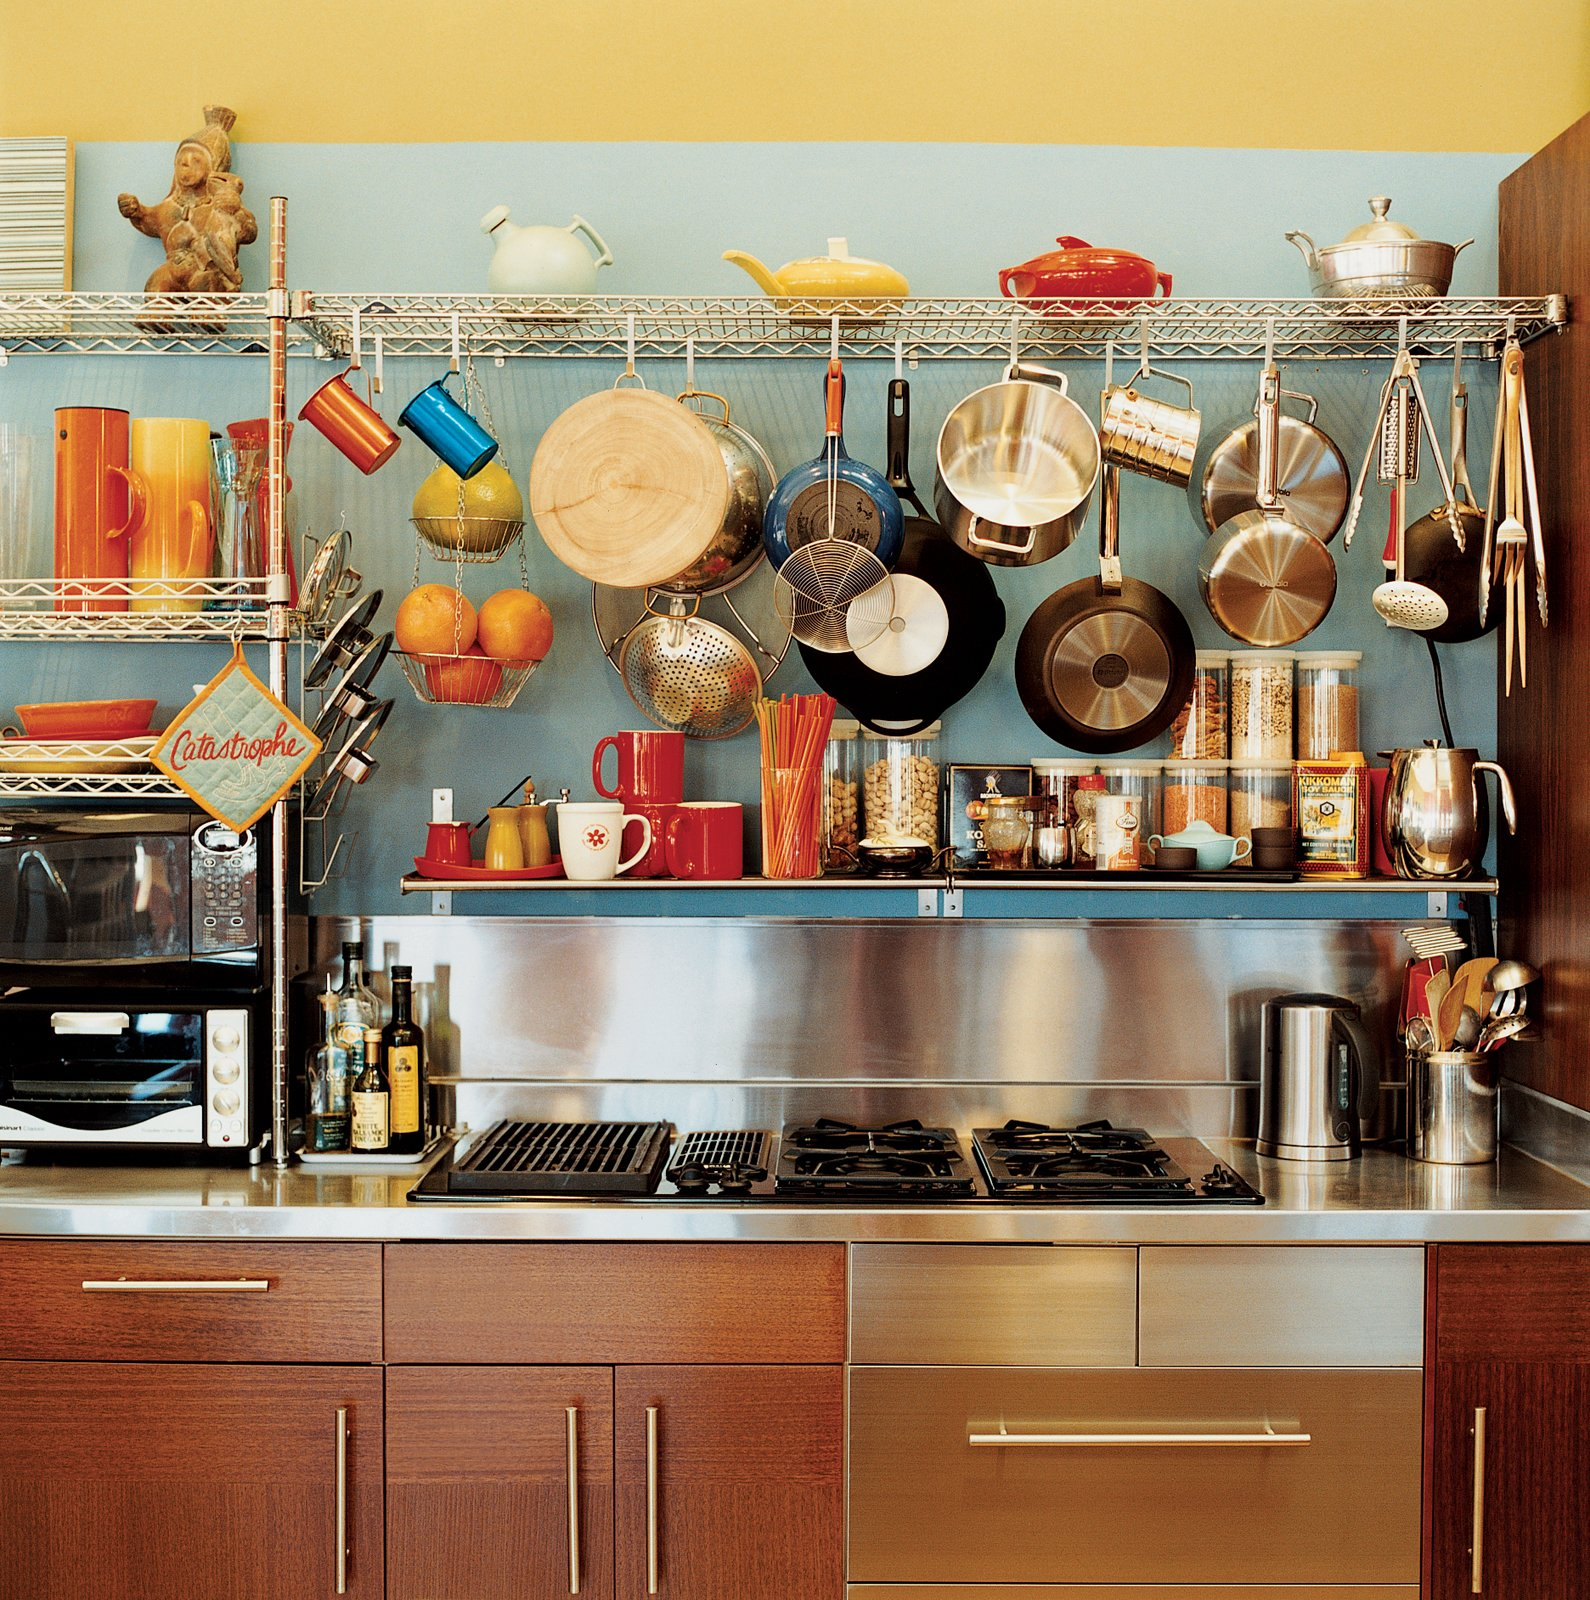 Vintage kettles and a wide-ranging assortment of pots and pans sit above kitchen cabinets from IKEA.